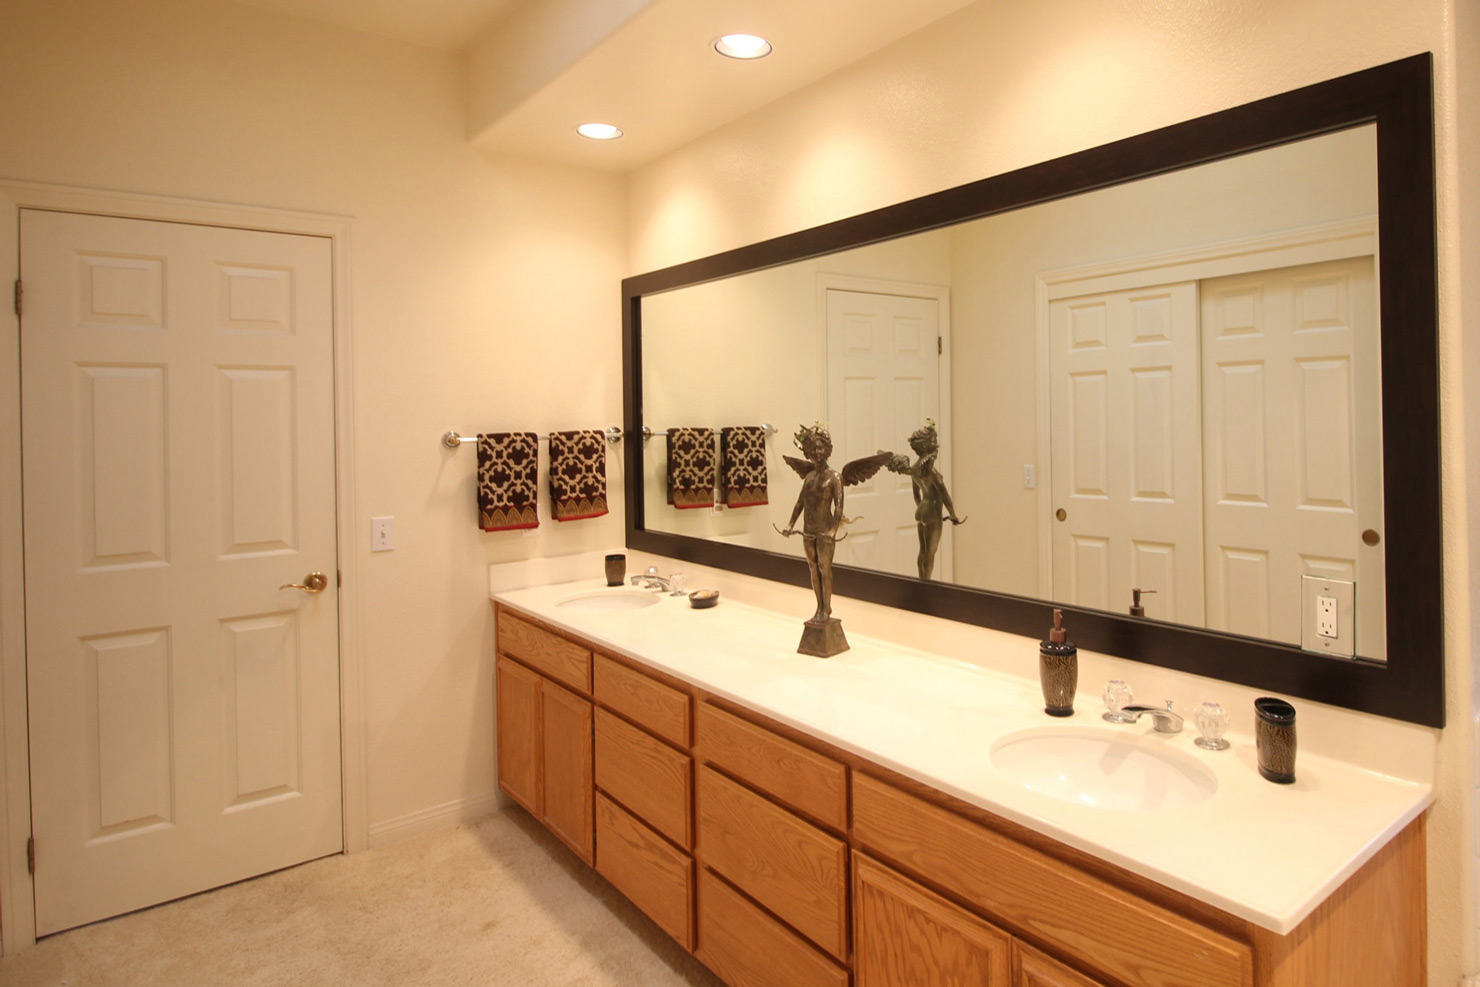 Large Framed Bathroom Mirrors Cheaper Than Retail Price Buy Clothing Accessories And Lifestyle Products For Women Men